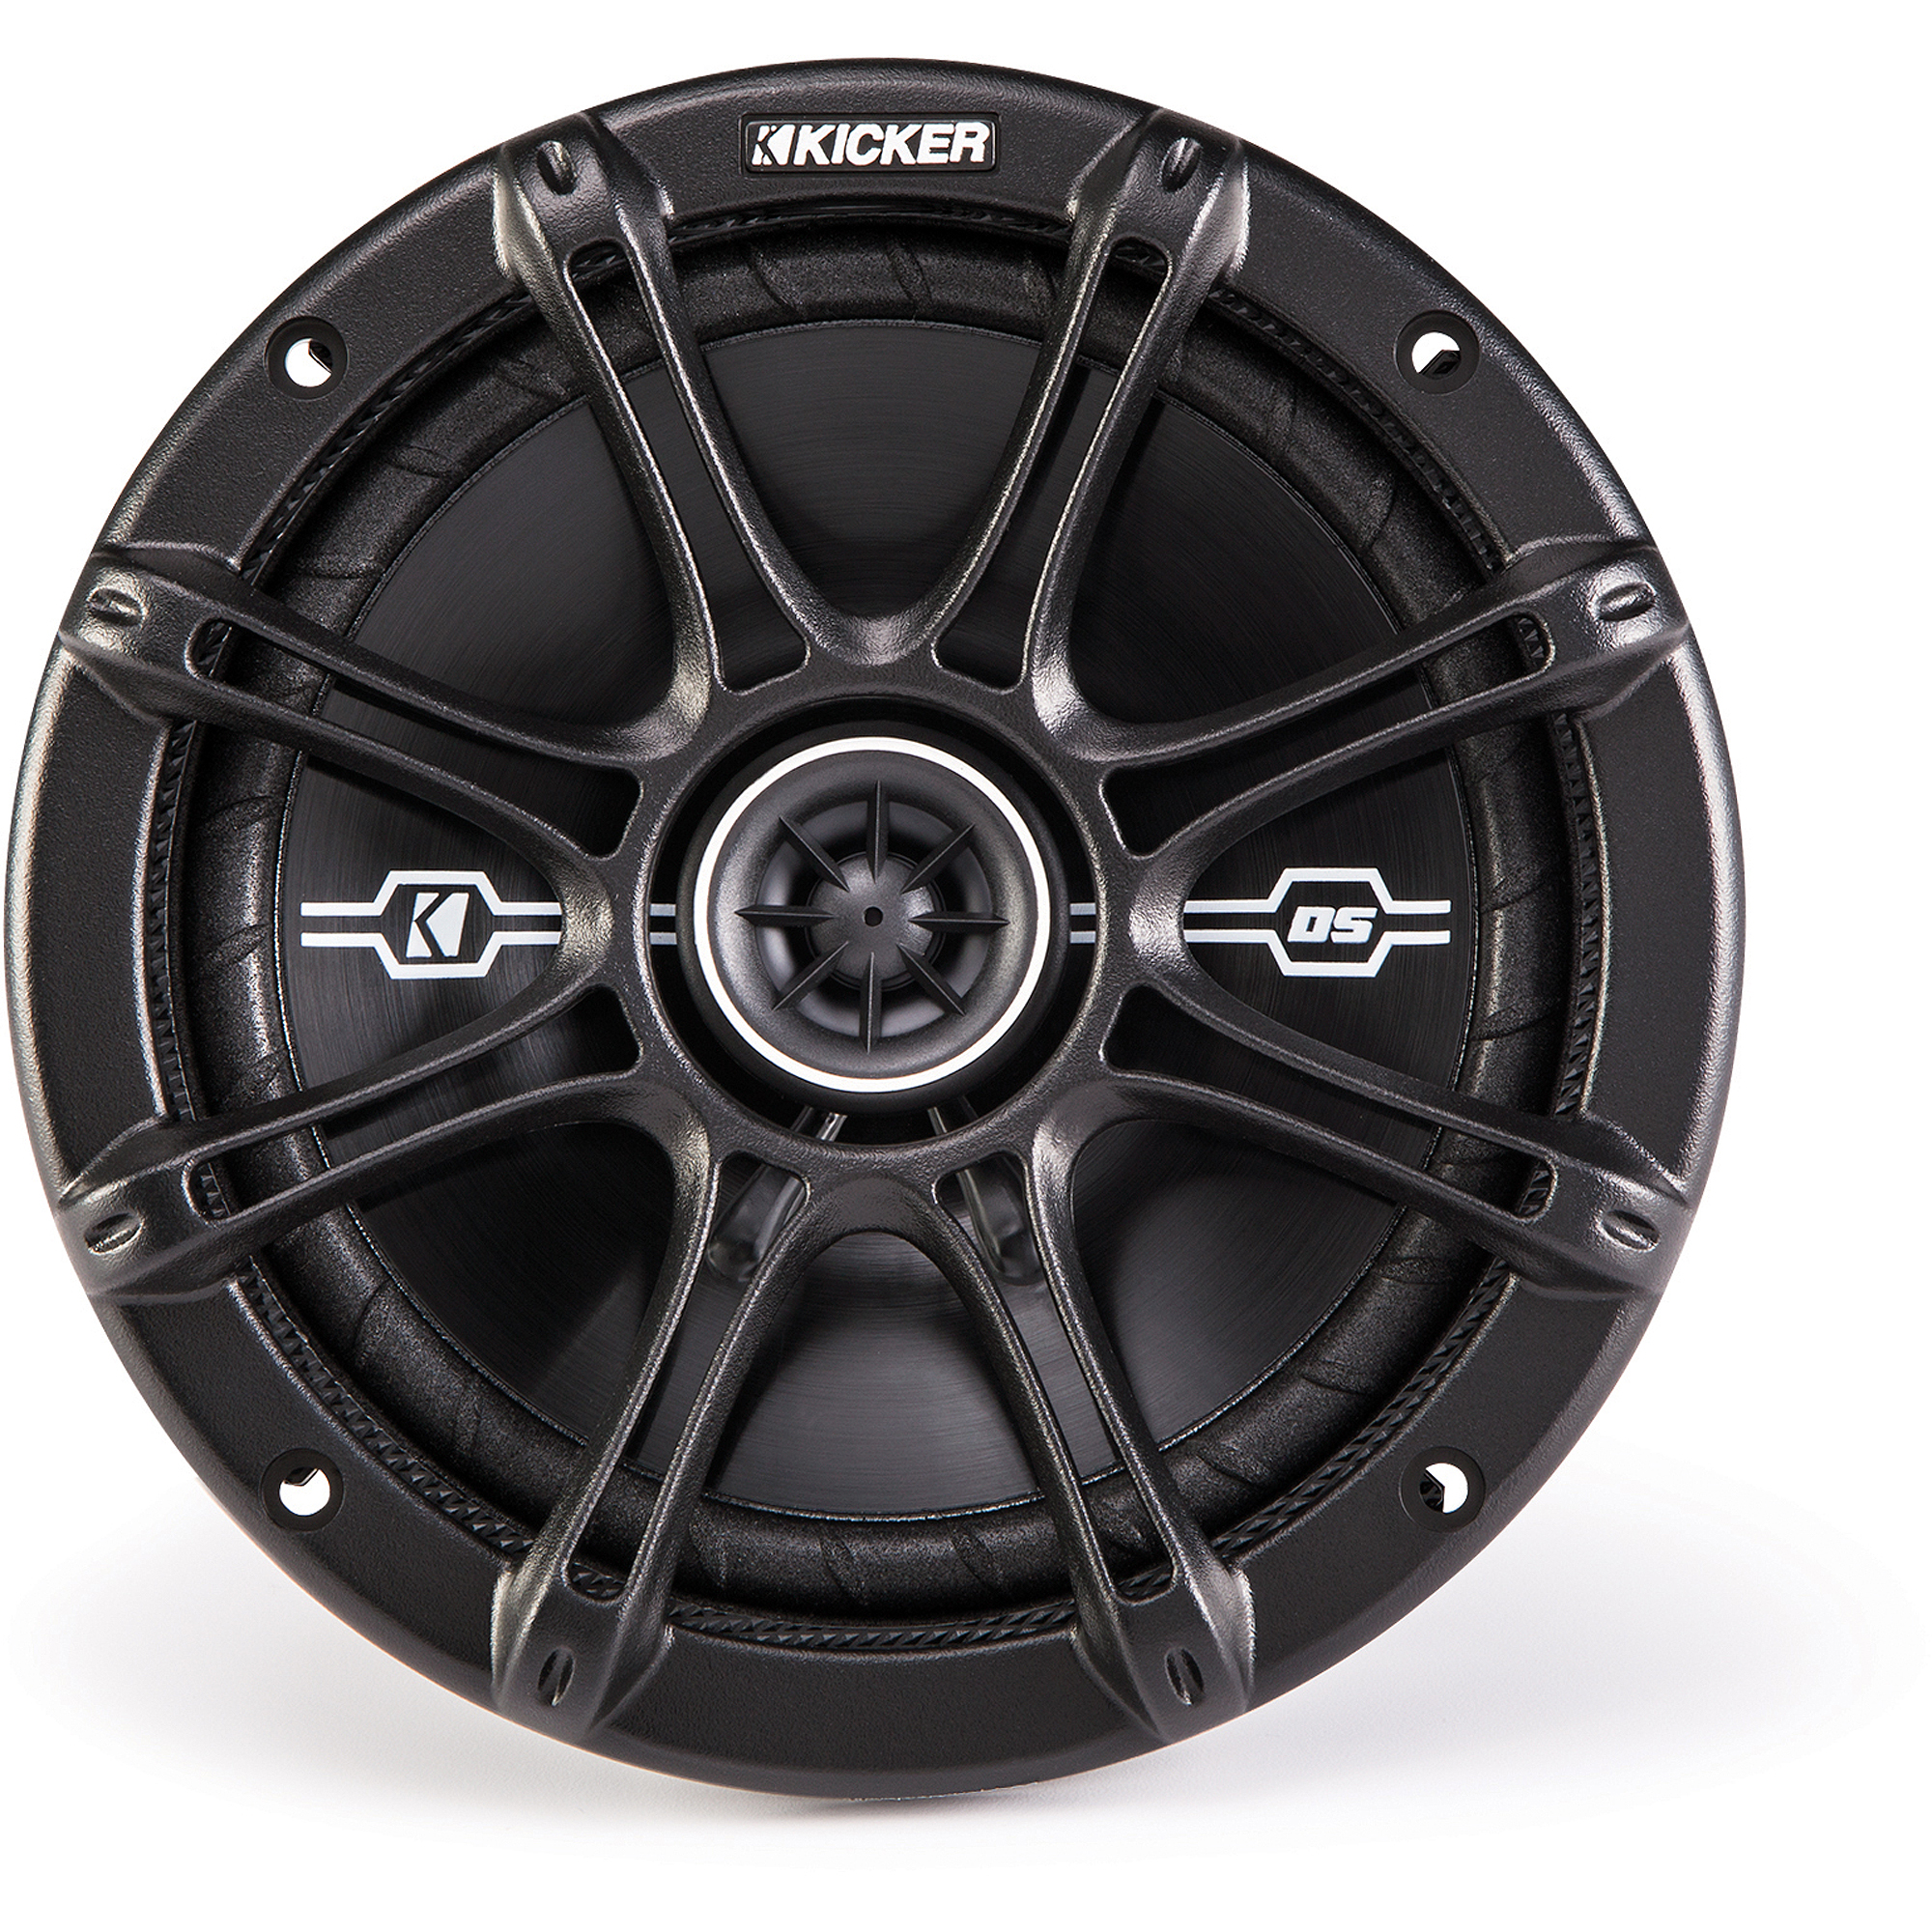 "Kicker DSC67 6.75"" 4-Ohm Coaxial Speakers with 1/2"" Tweeters"